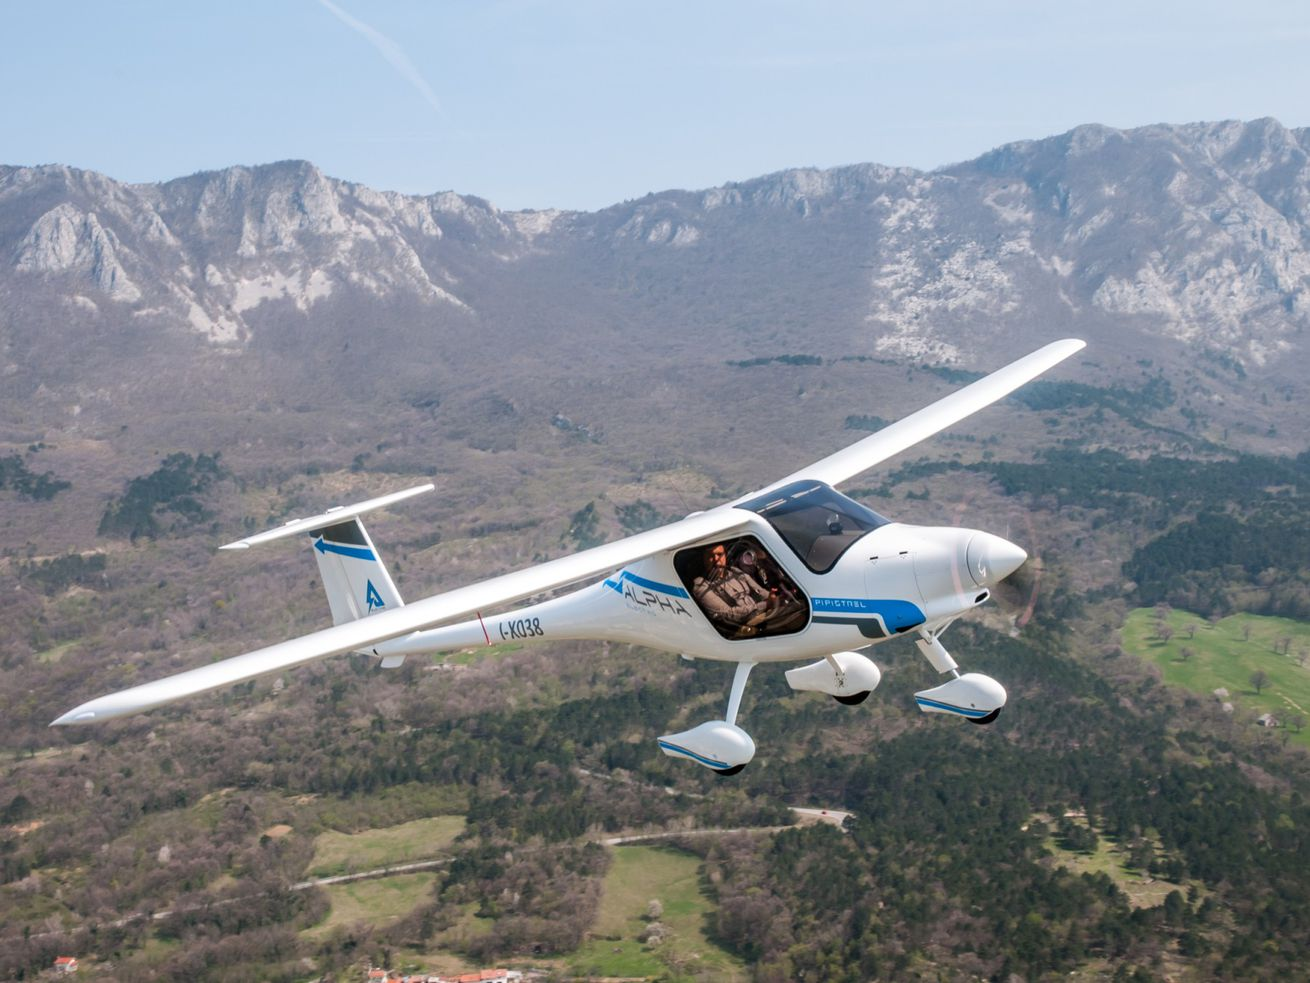 Pipistrel's Alpha Electro is one of the first production electric aircraft. Electrifying aviation is an important strategy for mitigating climate change.